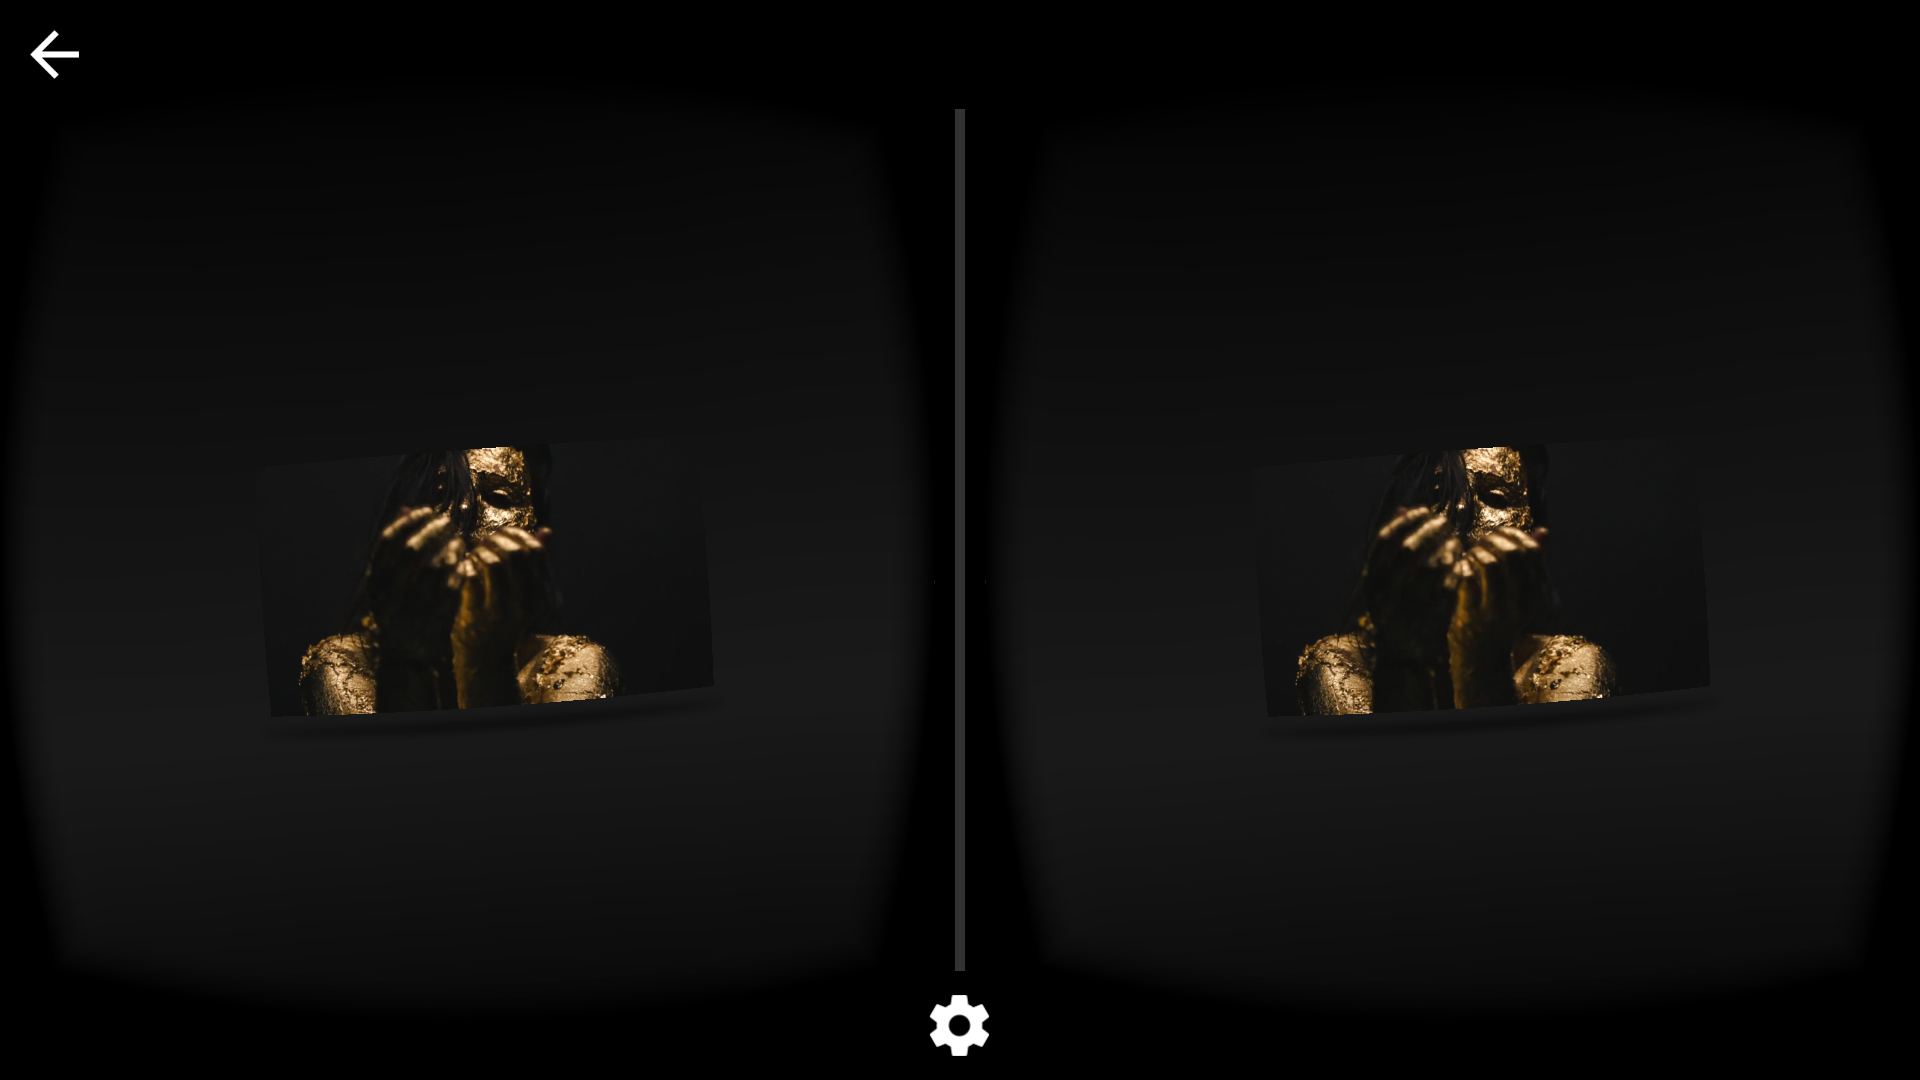 Watching YouTube videos using Google Cardboard is actually pretty